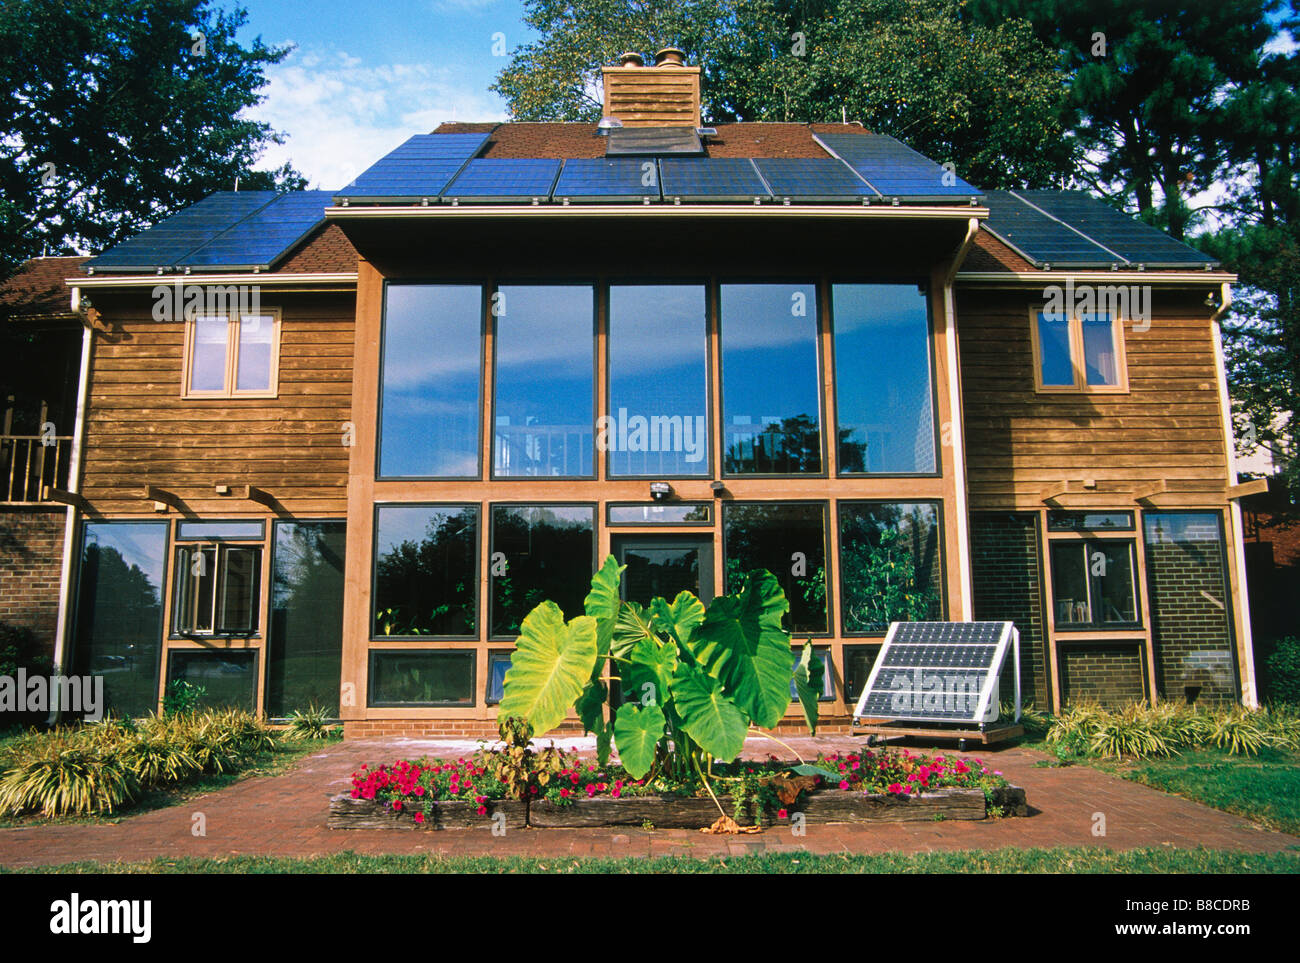 Solar powered House - Stock Image